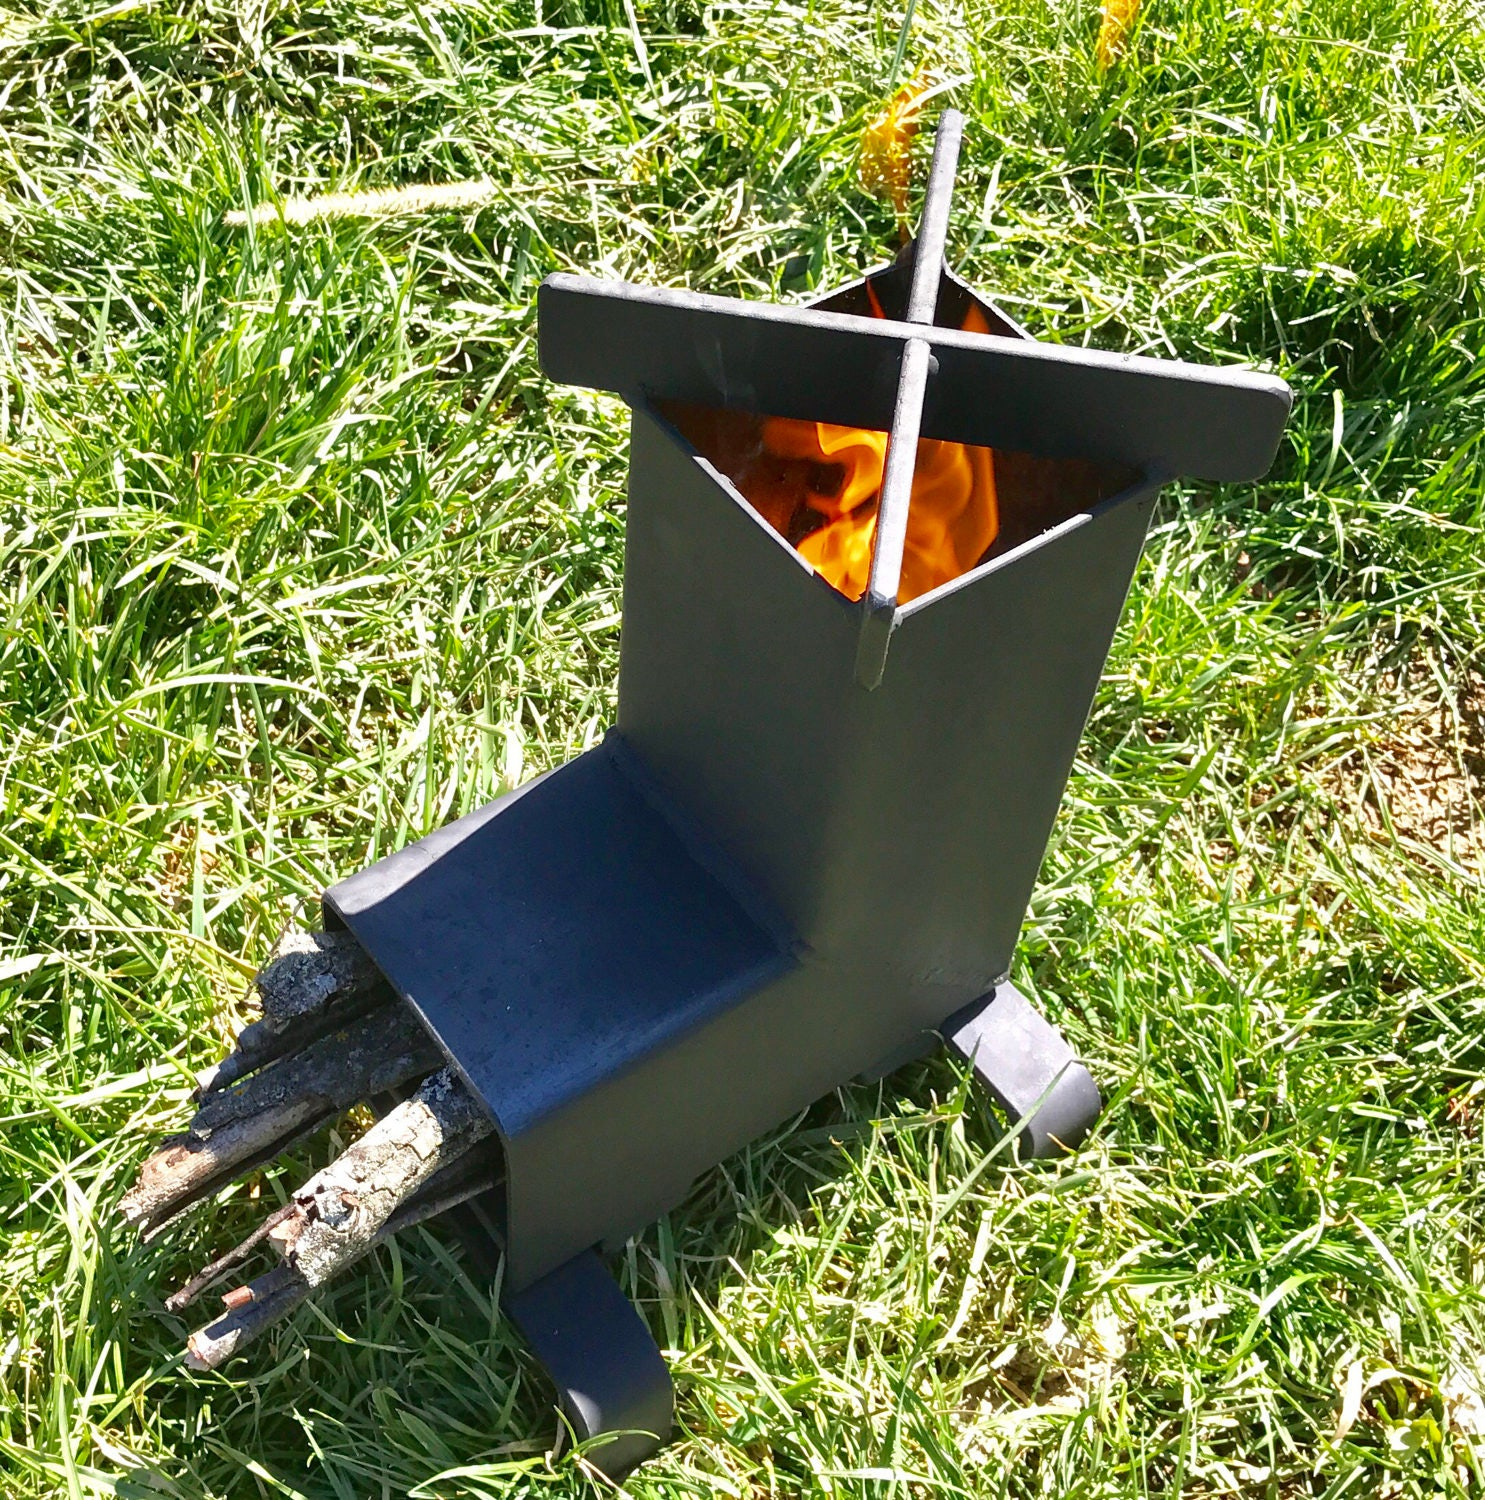 Rocket stove camping stove wood stove emergency stove for Portable rocket stove